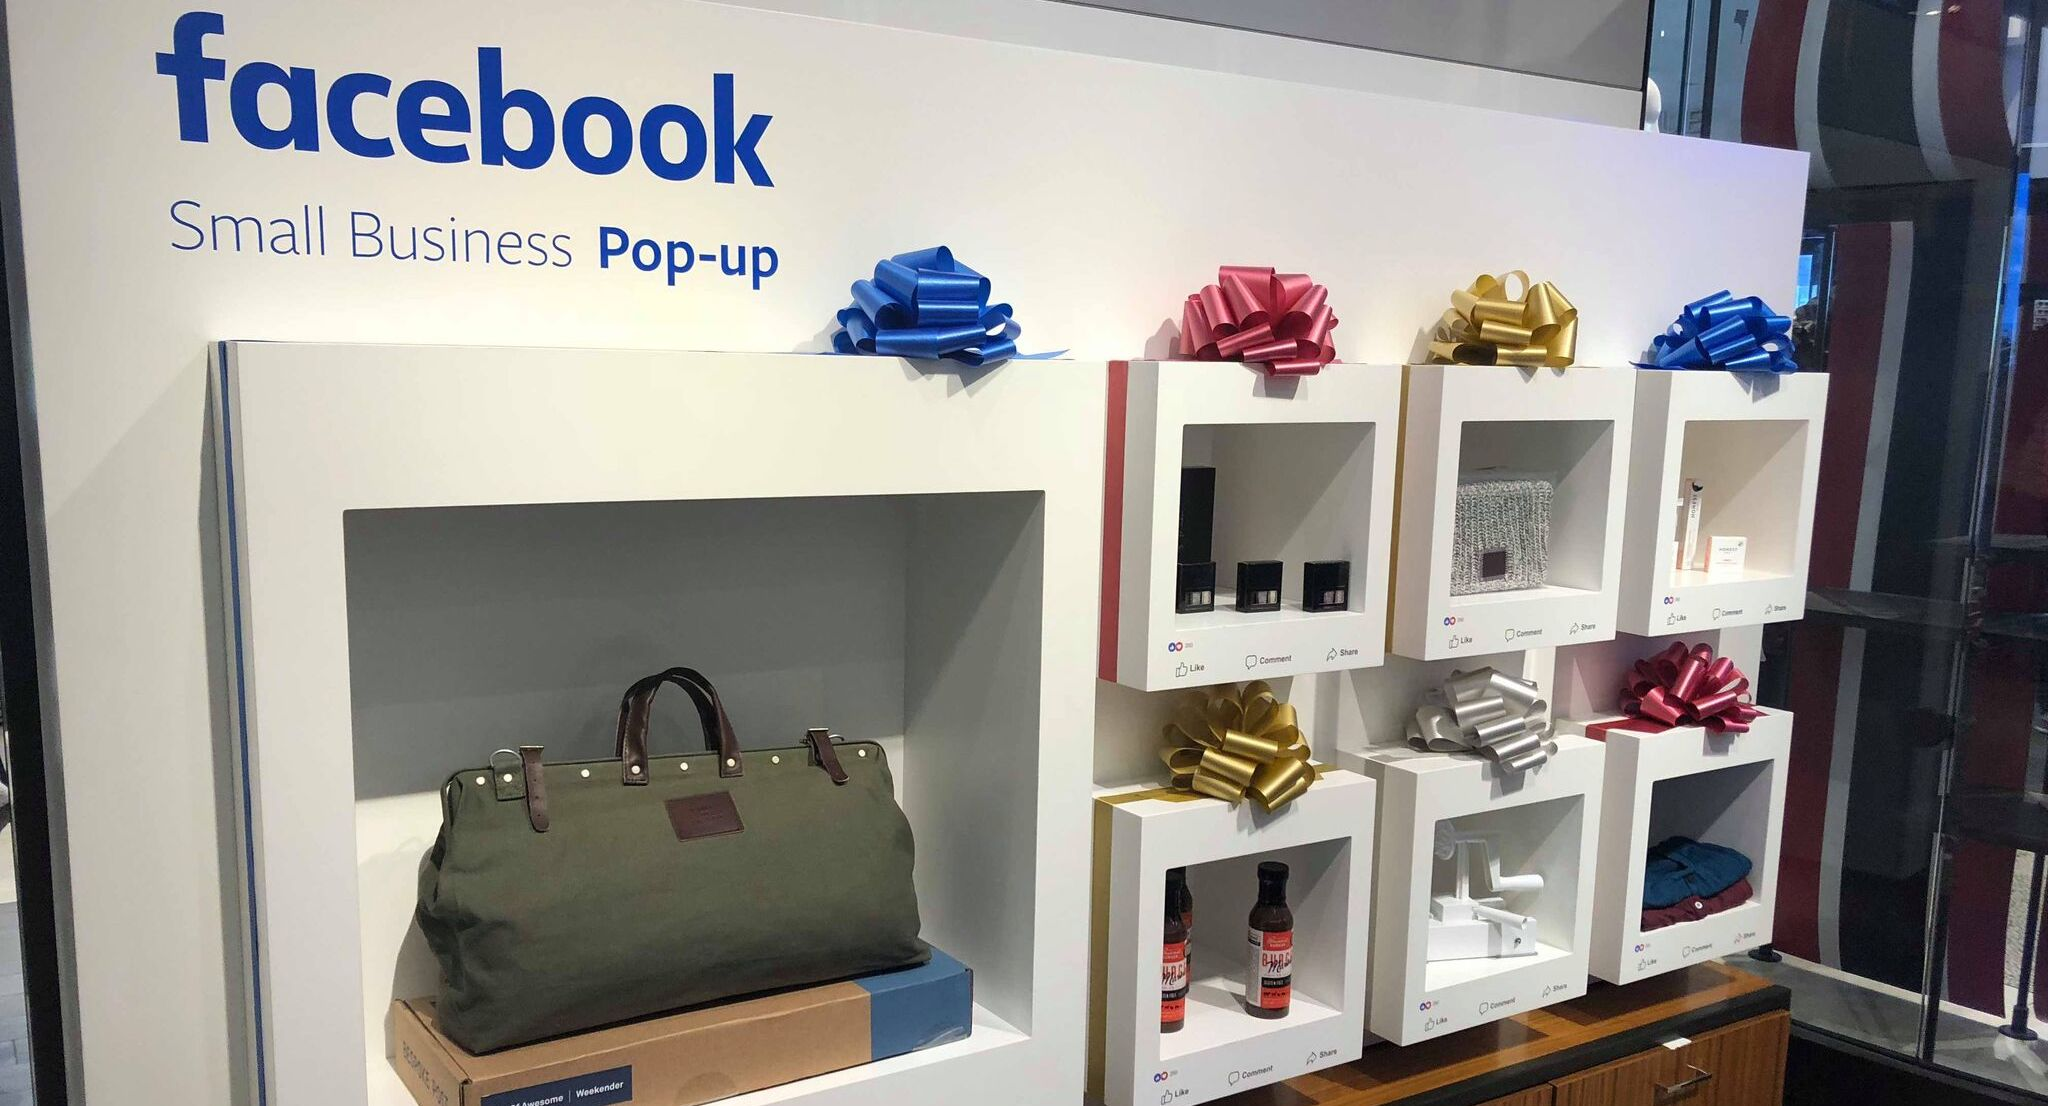 Facebook opens its first small biz pop-up stores inside Macy's